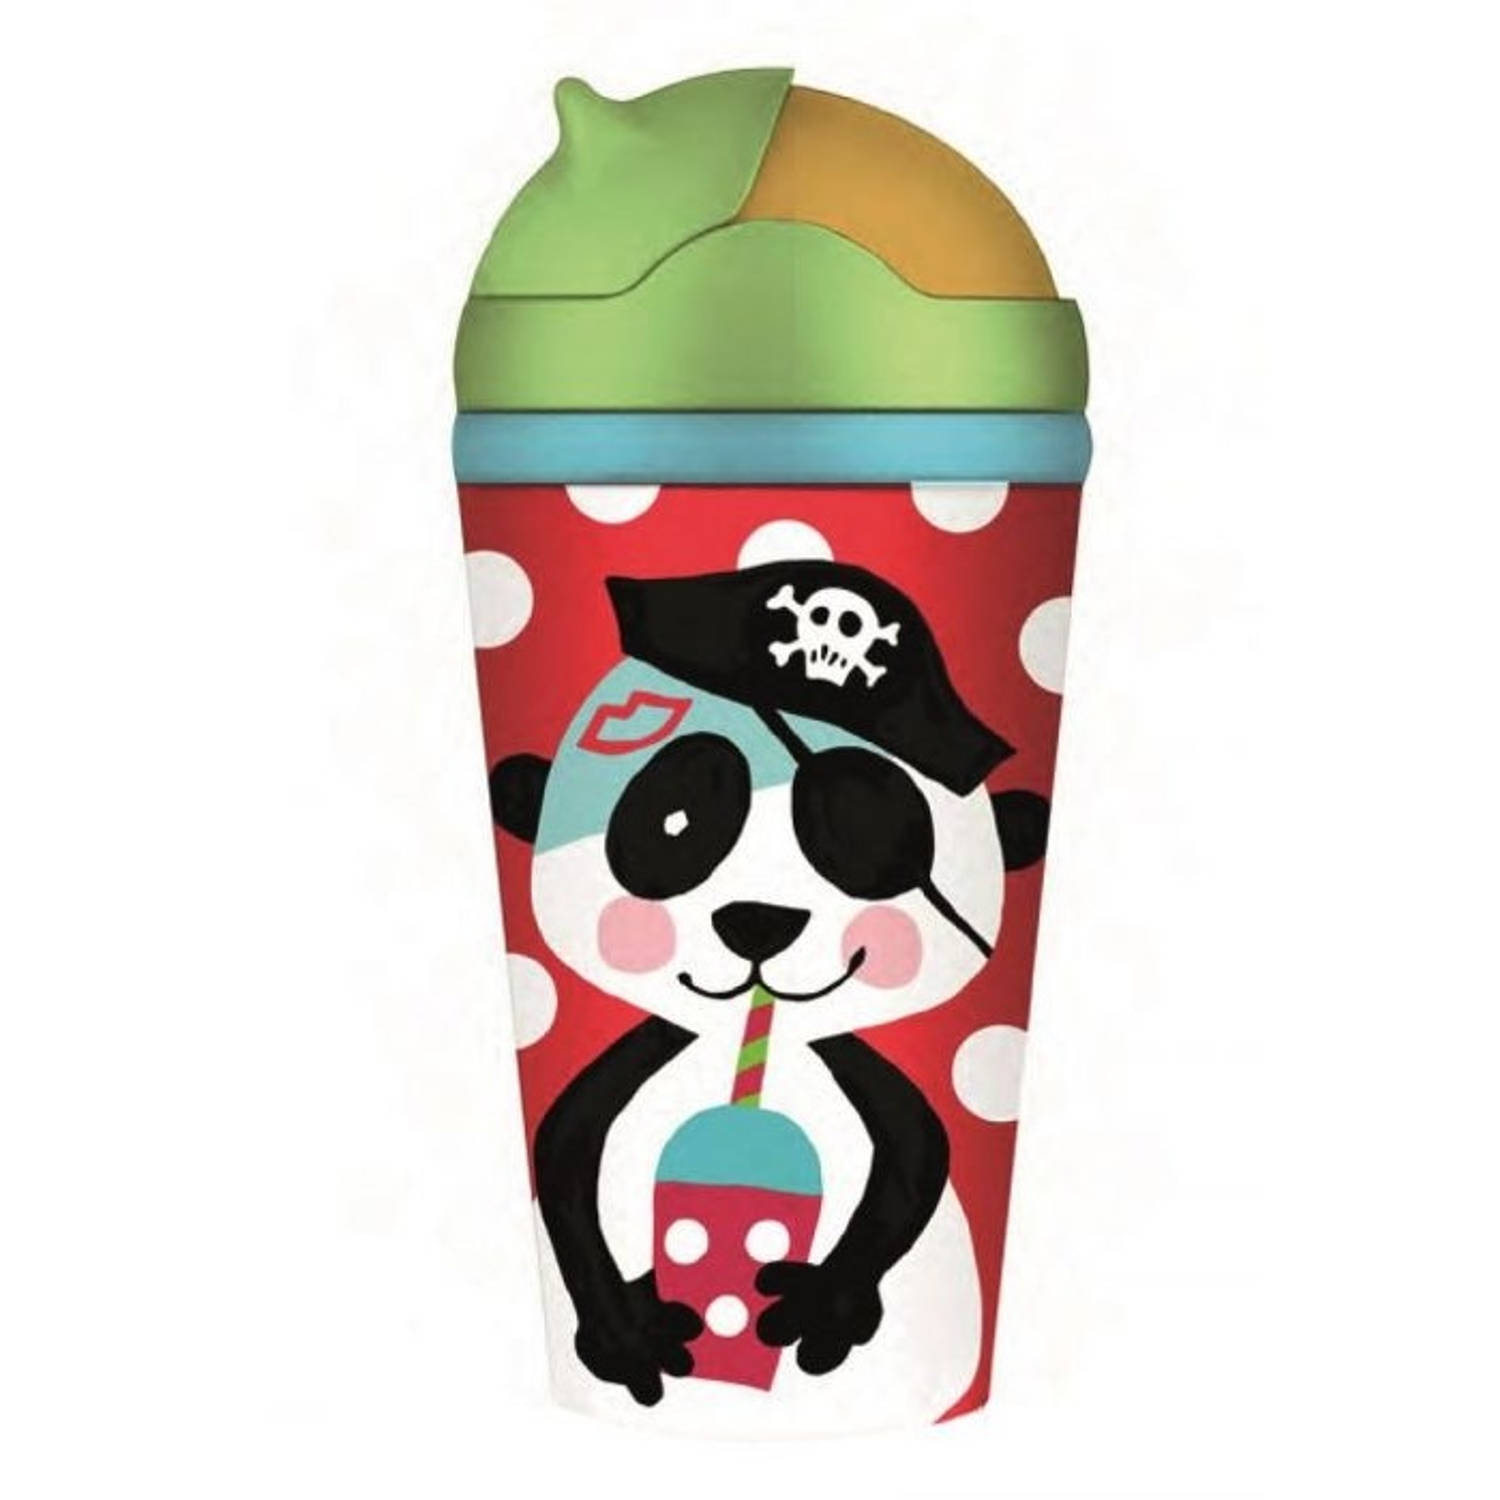 Chic.Mic drinkbeker Bamboe met rietje 300 ml piratenschat